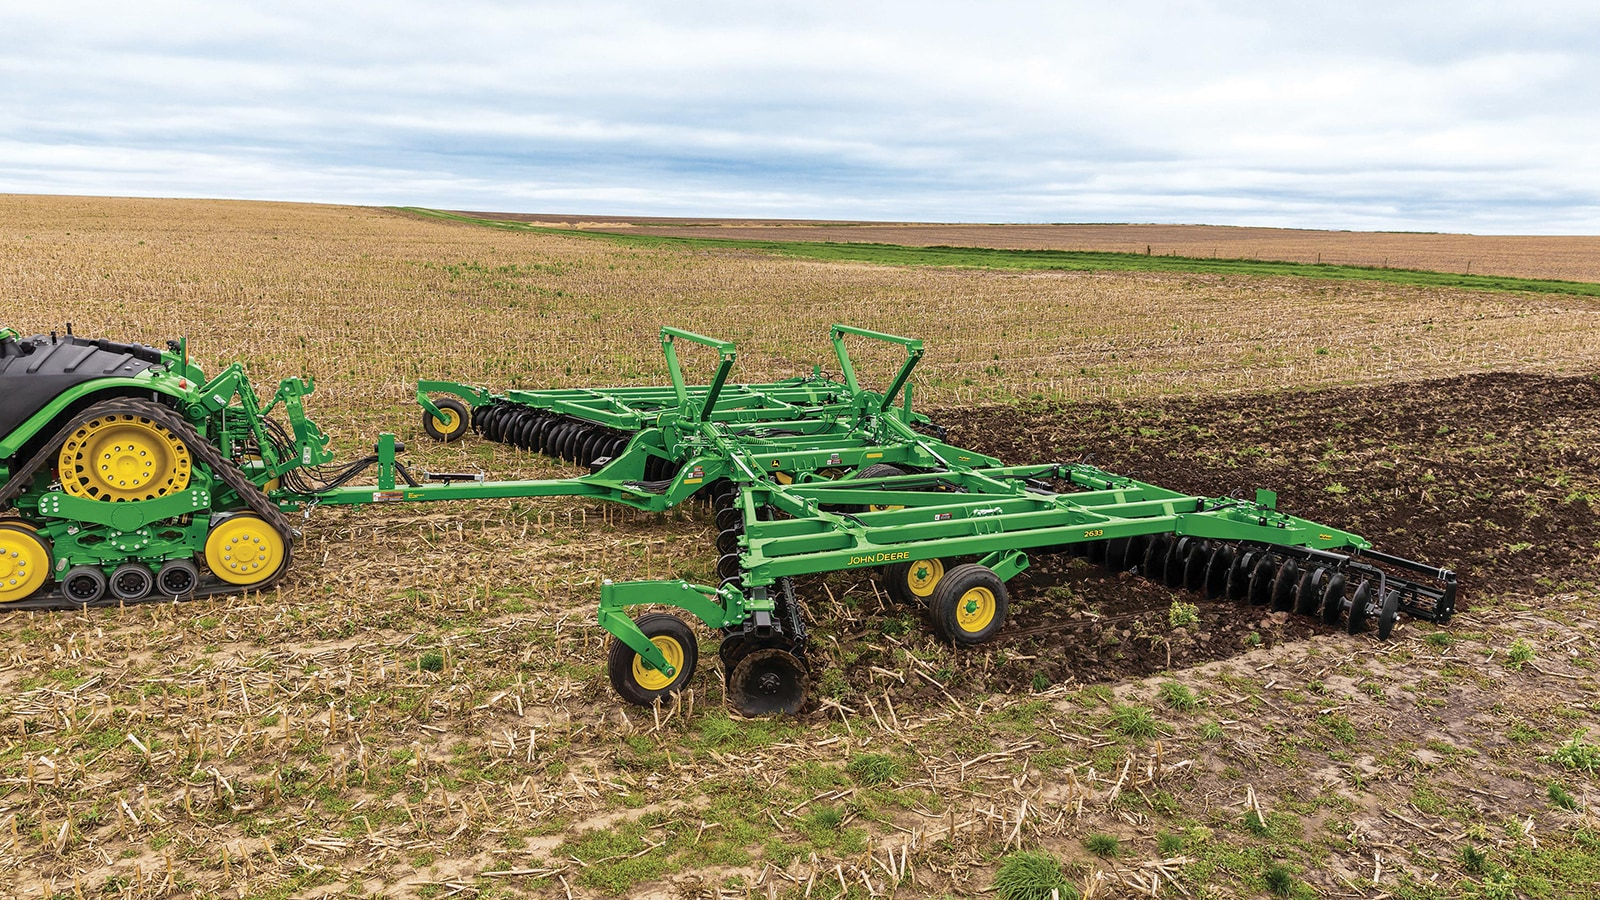 New John Deere 2630 Series Disks are ideal for light, medium and heavy-duty tillage operations.